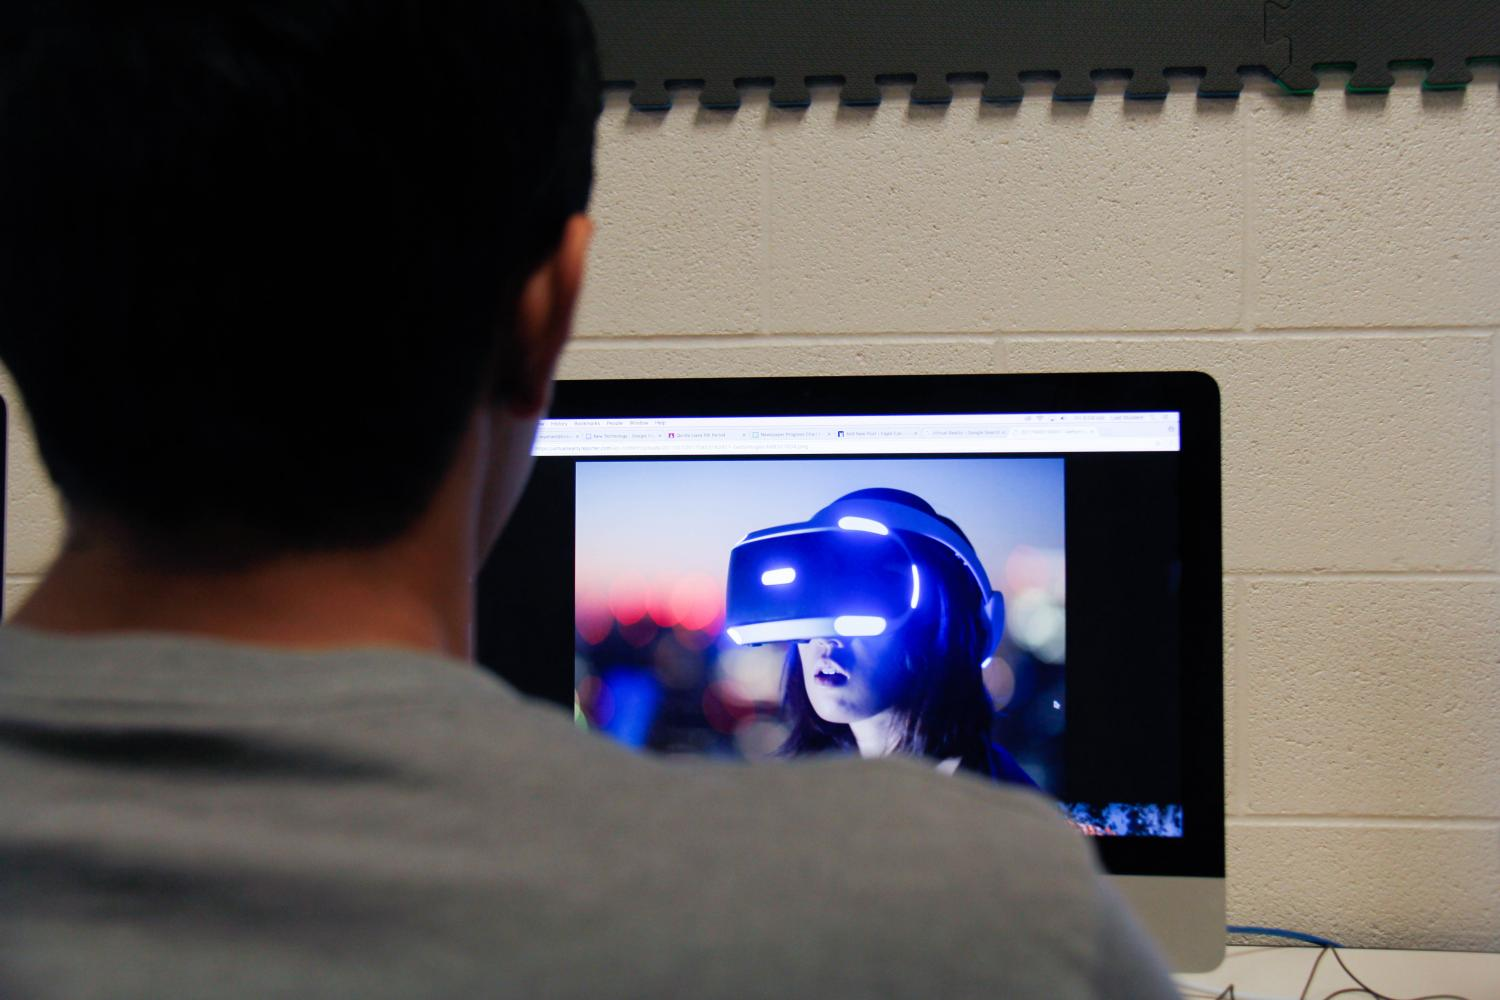 Senior Ronak Desai views the latest virtual reality technology. Virtual technology has the advanced capability to immerse a user into a three dimensional world.